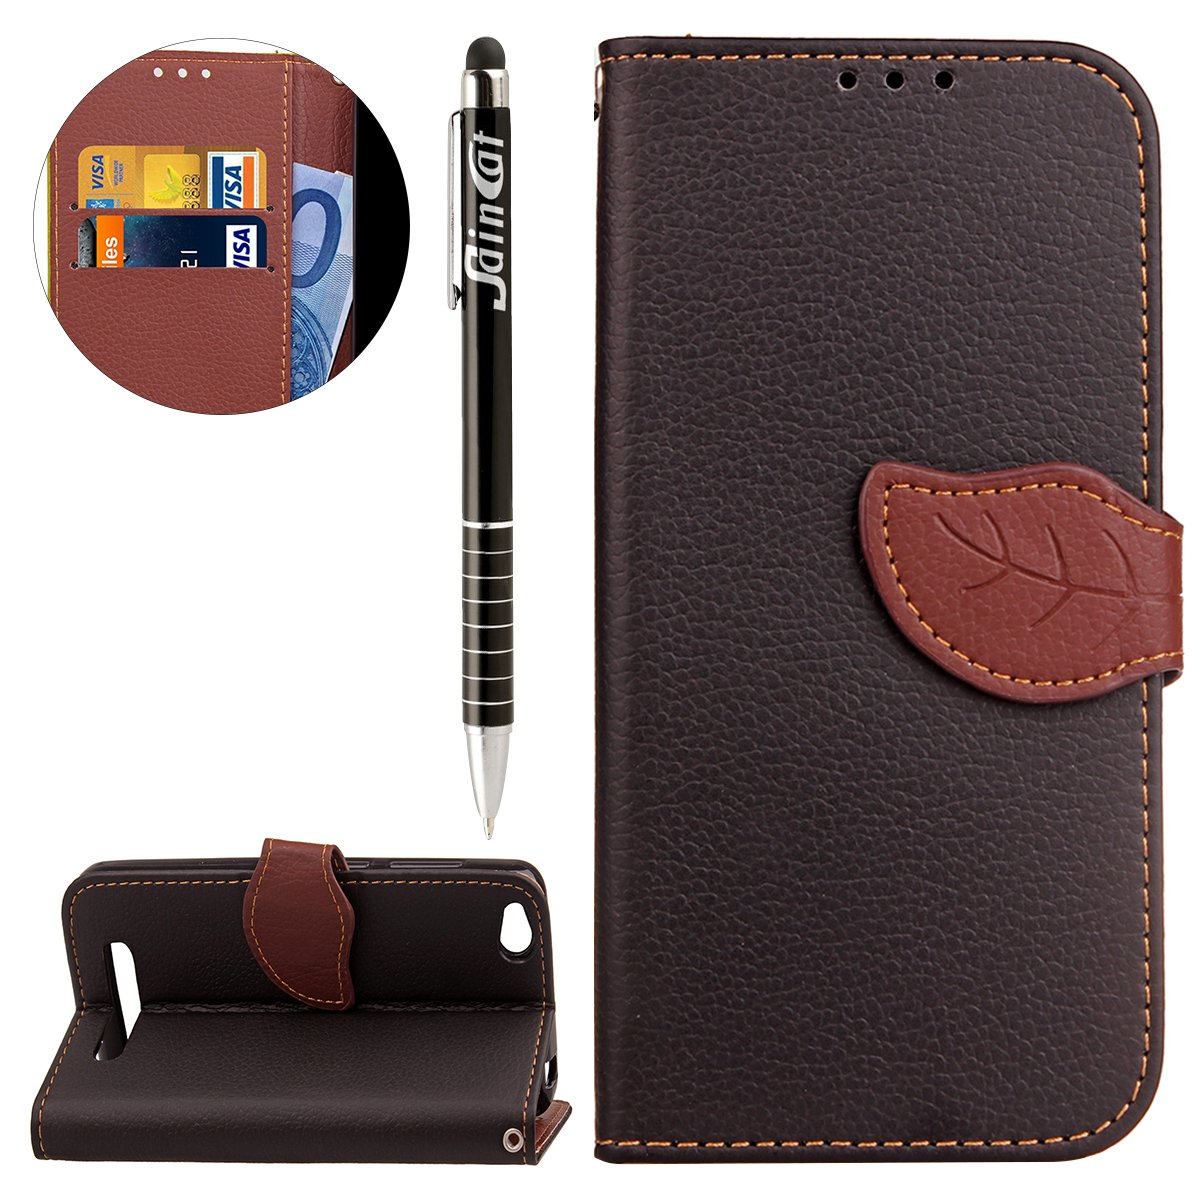 Custodia Xiaomi Redmi 4A, Xiaomi Redmi 4A Flip Case Leather, SainCat Custodia in Pelle Cover per Xiaomi Redmi 4A, Anti-Scratch Book Style Protettiva Caso PU Leather Flip Portafoglio Custodia Libro Protettiva Custodia a Portafoglio Wallet Cover, Wallet Case